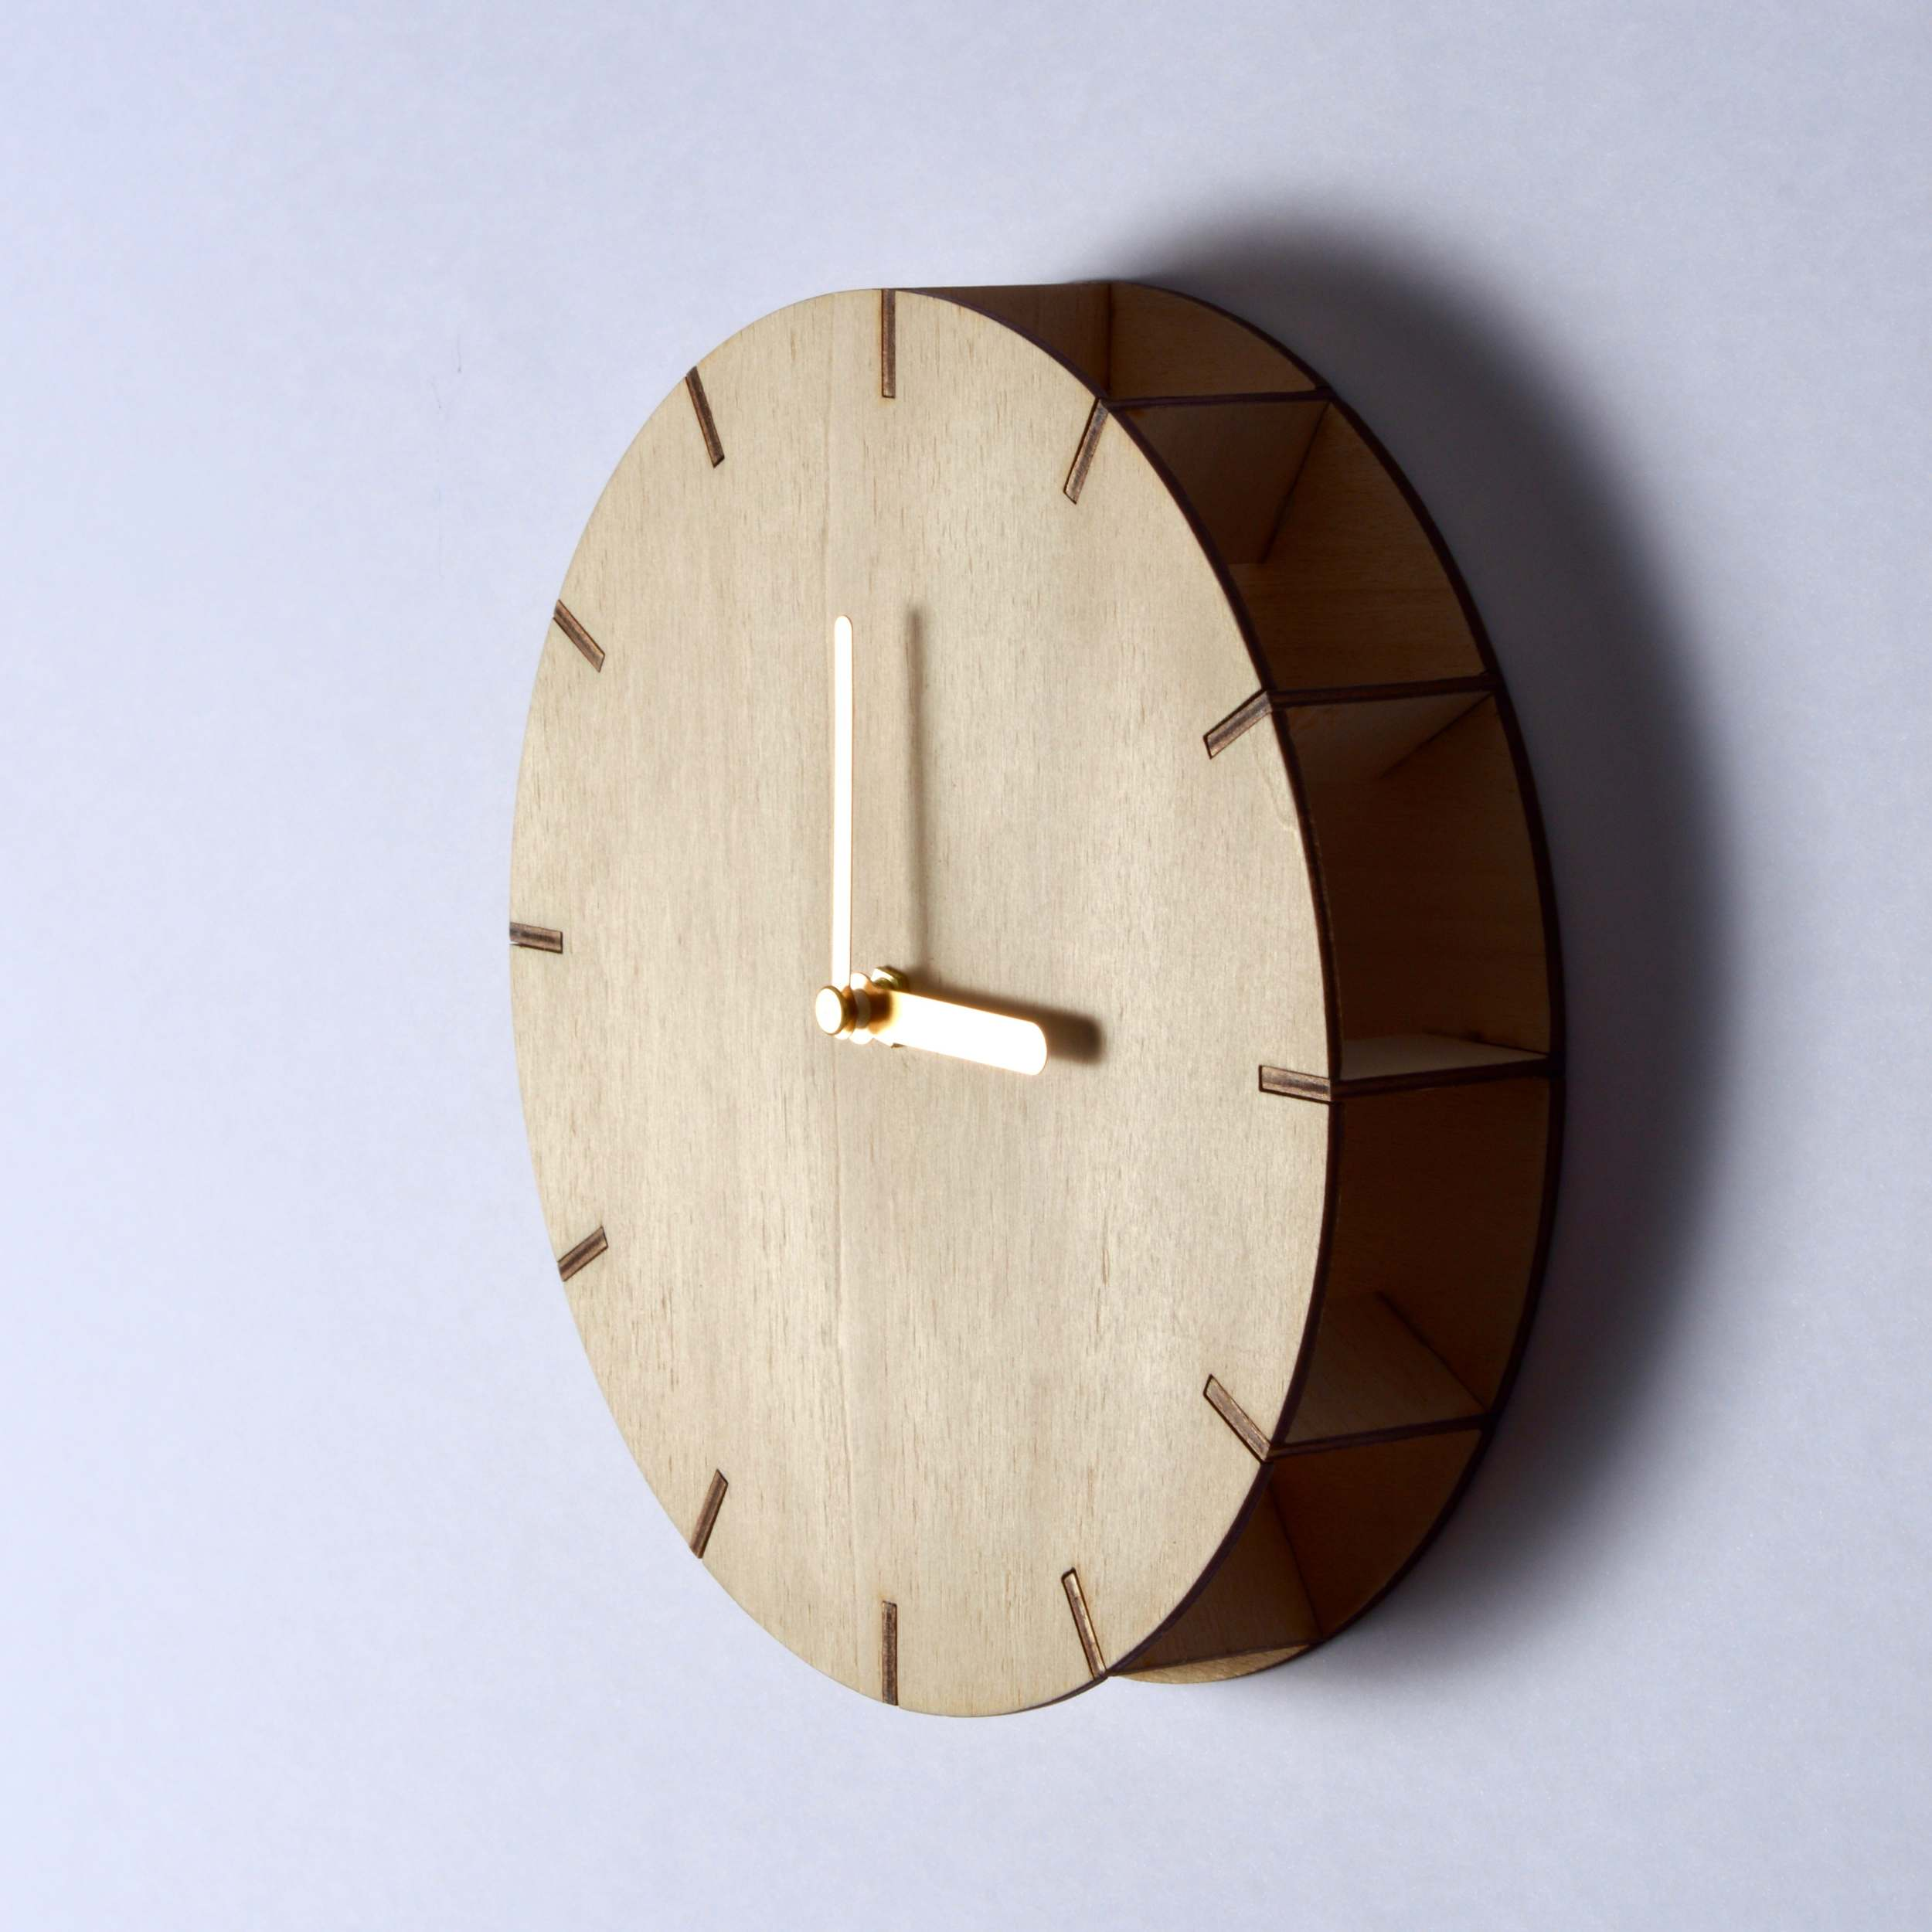 Wall-Tic clock - The Wall-Tic clock is a wall mounted variety of the Table-Toc cock. Made from laser cut plywood.